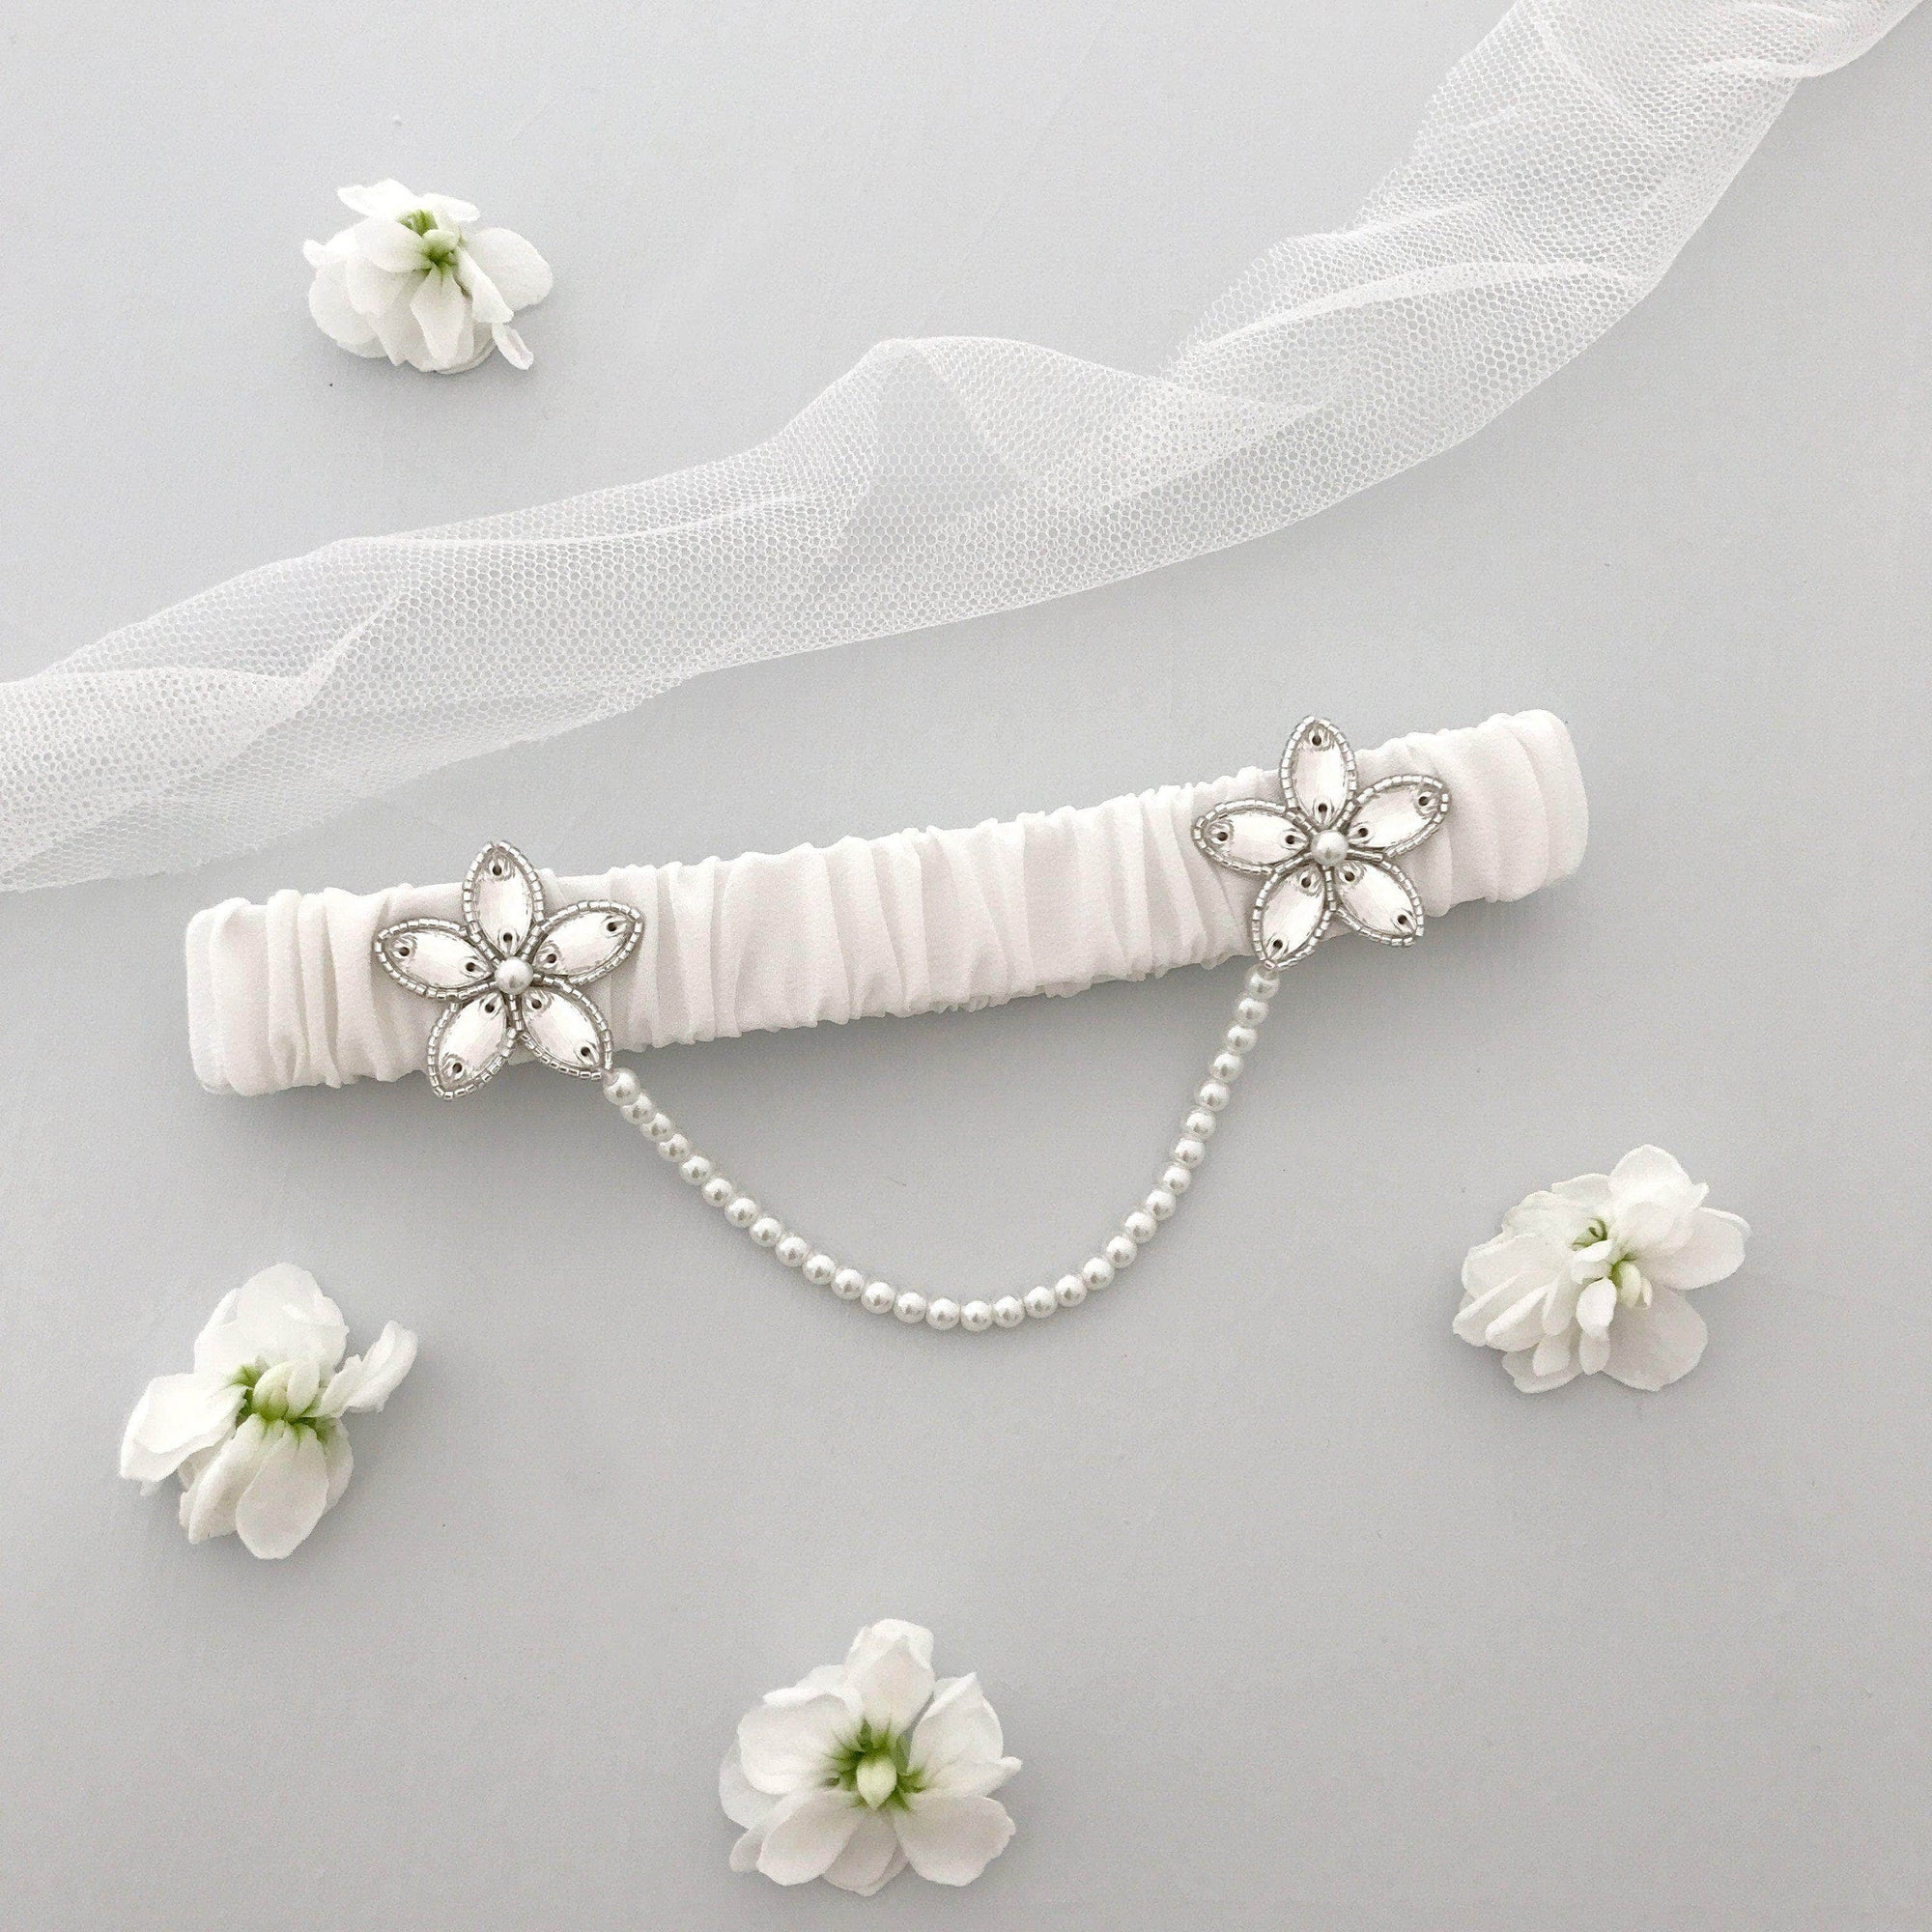 Wedding Garter Ivory / Extra small 35-40cm (13.5-16 inch) Luxury silk wedding garter with pearl chain (various colours) - 'Iva'